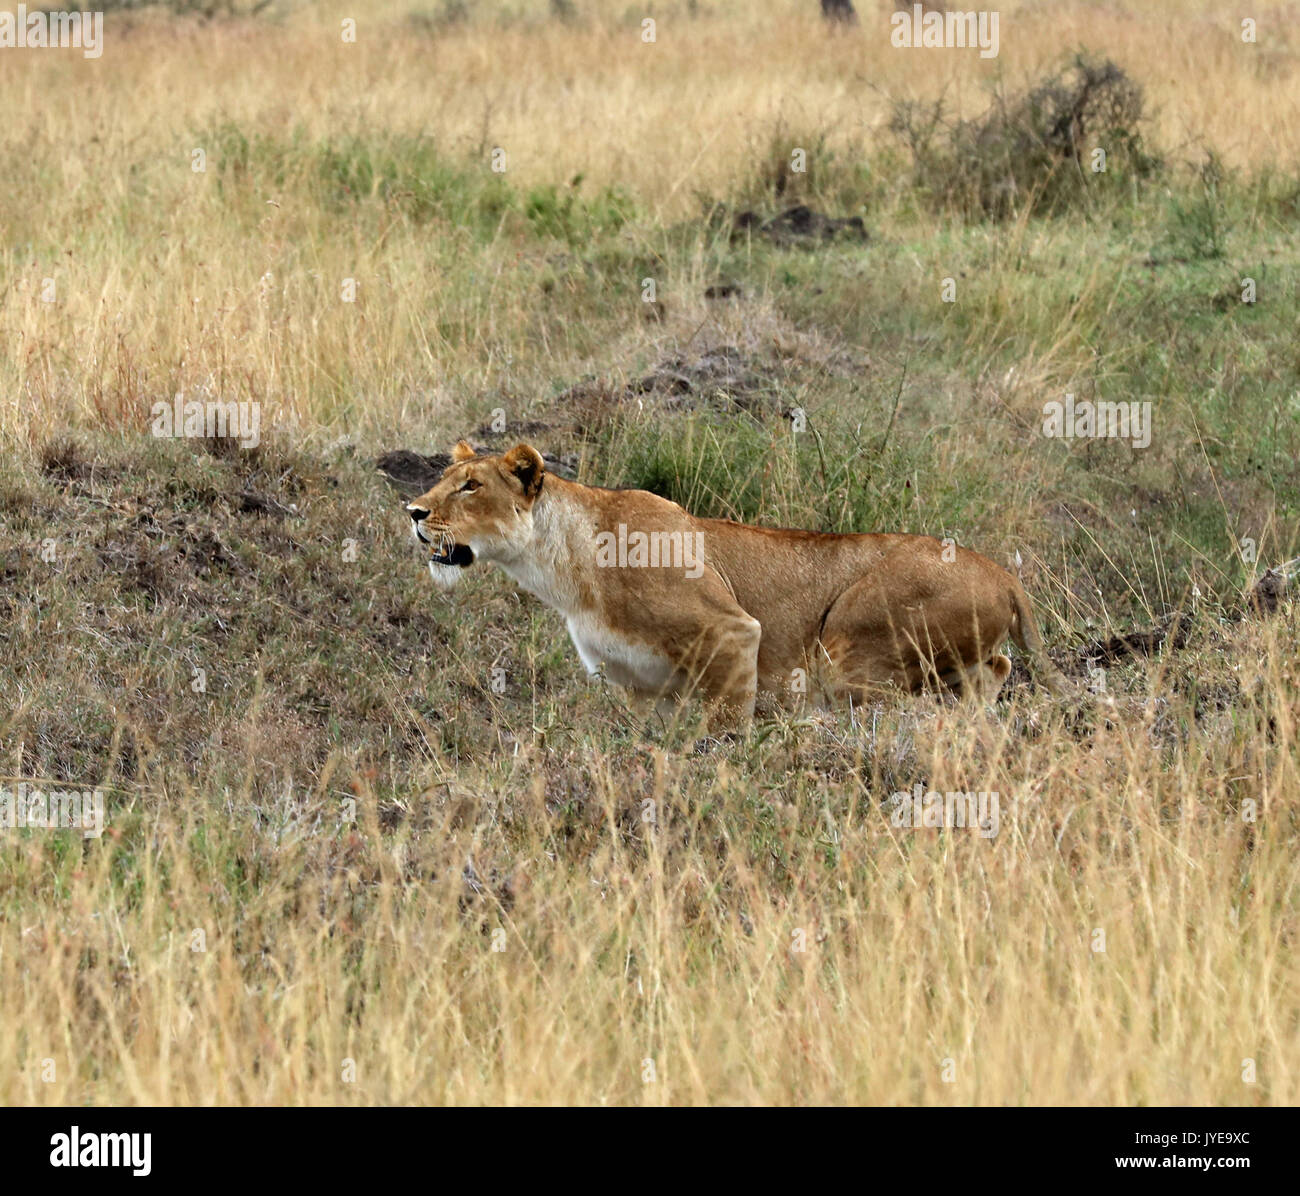 Lioness Hunting Stock Photos & Lioness Hunting Stock ...